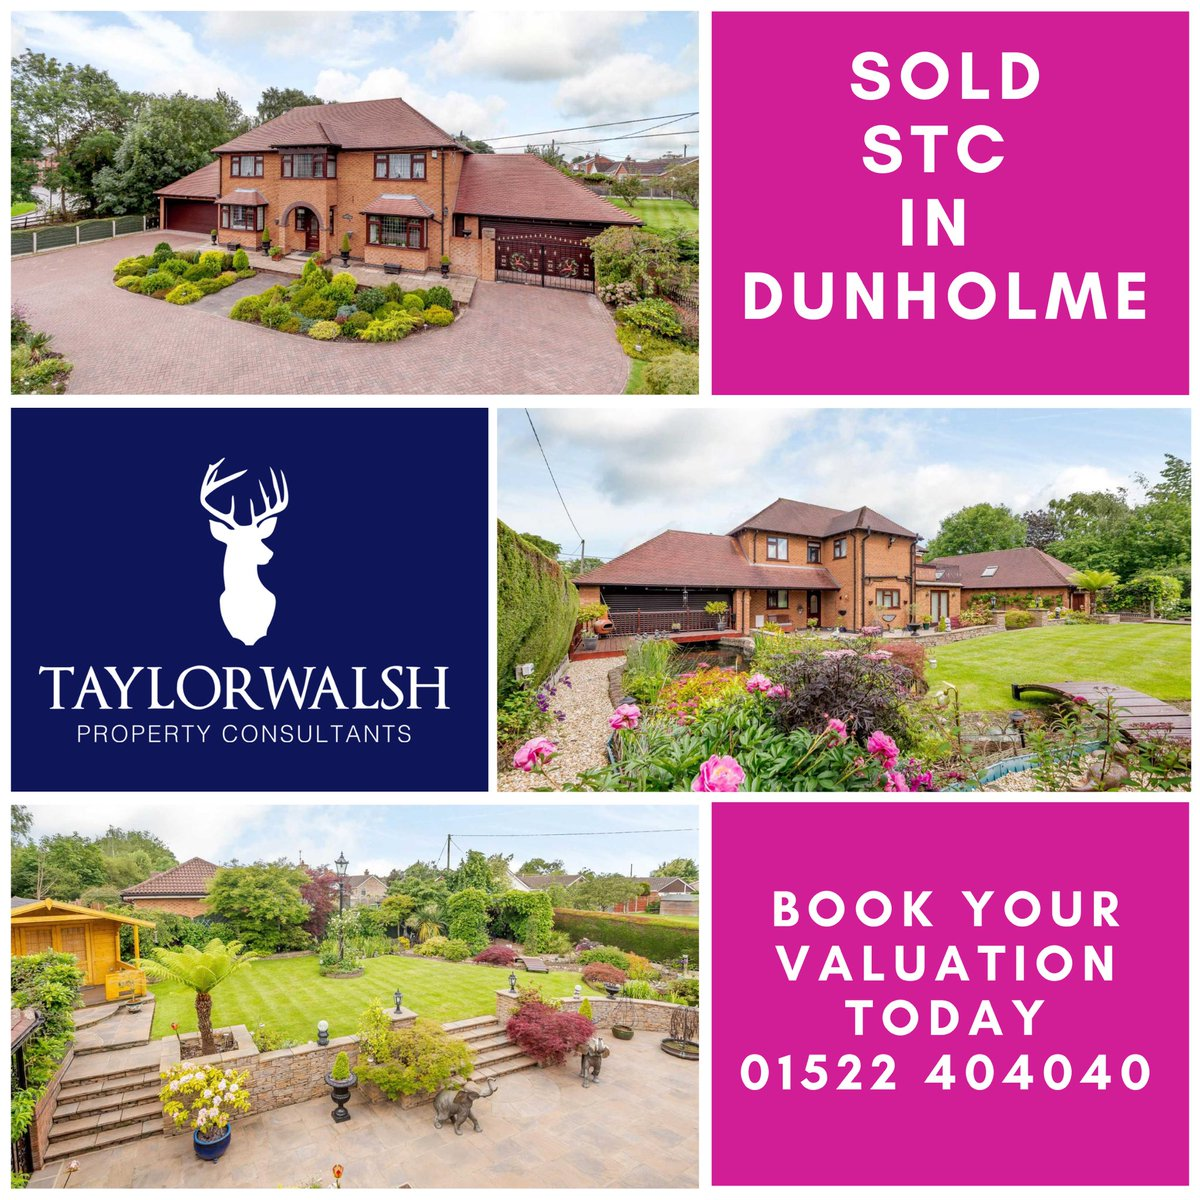 SOLD STC after being marketed with two previous agents. Superb result from the team 👏🏻 🔥 🏡  #dunholme #lincoln #sold #estatesgent @TaylorWalshLinc https://t.co/dRJpKwp7Rv https://t.co/LljzZct9qT